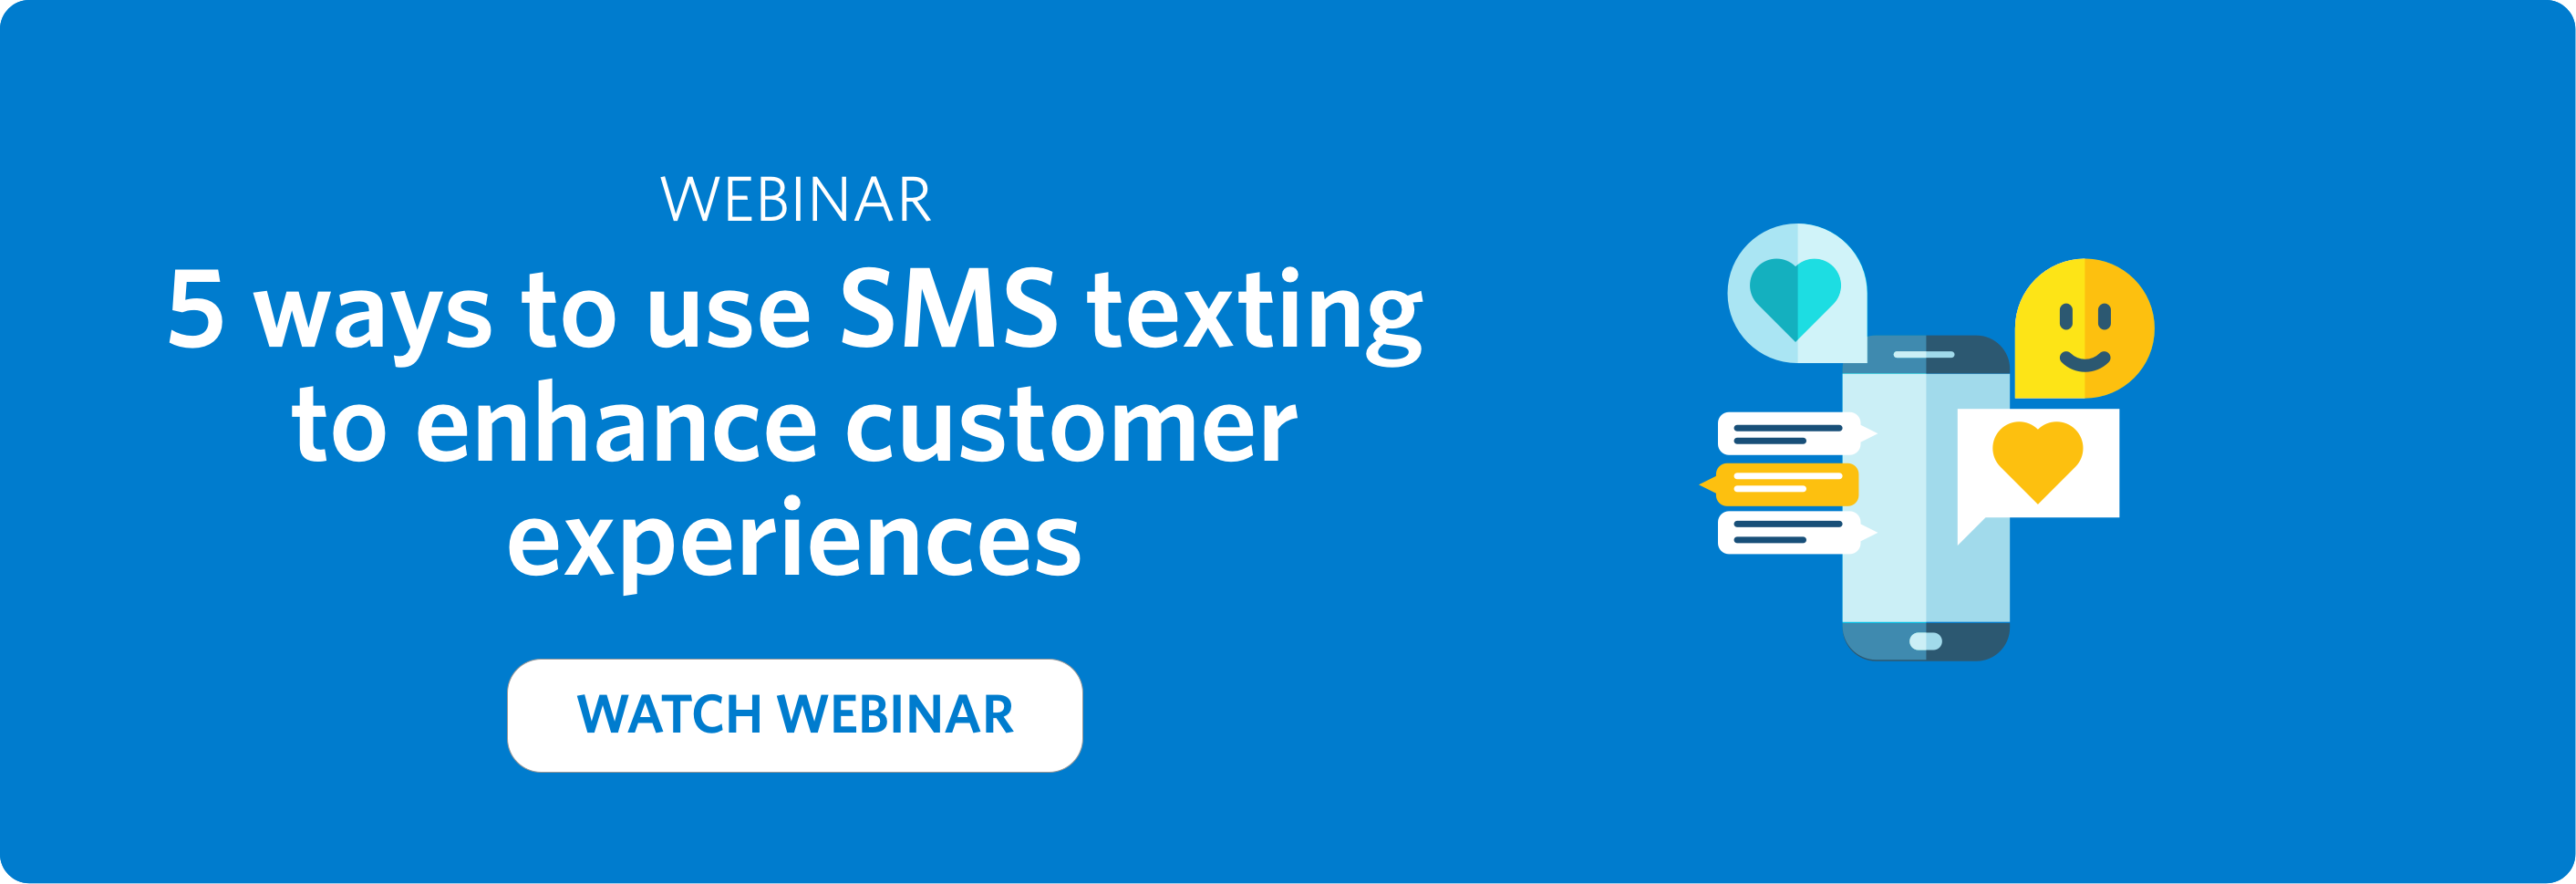 5 ways to use SMS texting to enhance customer experiences webinar - click to watch